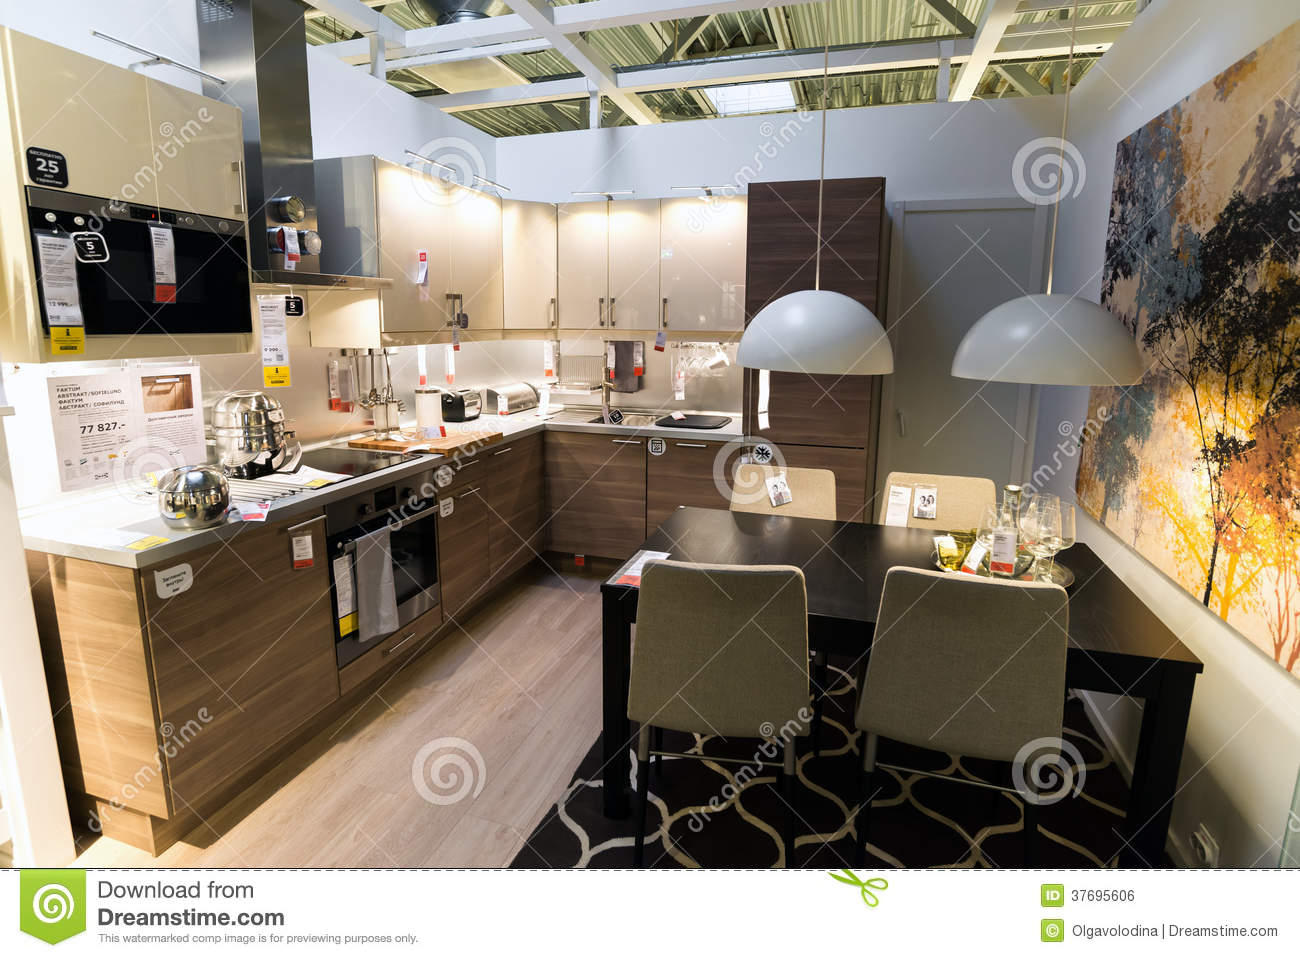 Cuisine dans le magasin de meubles ikea photo ditorial Magasin de meuble